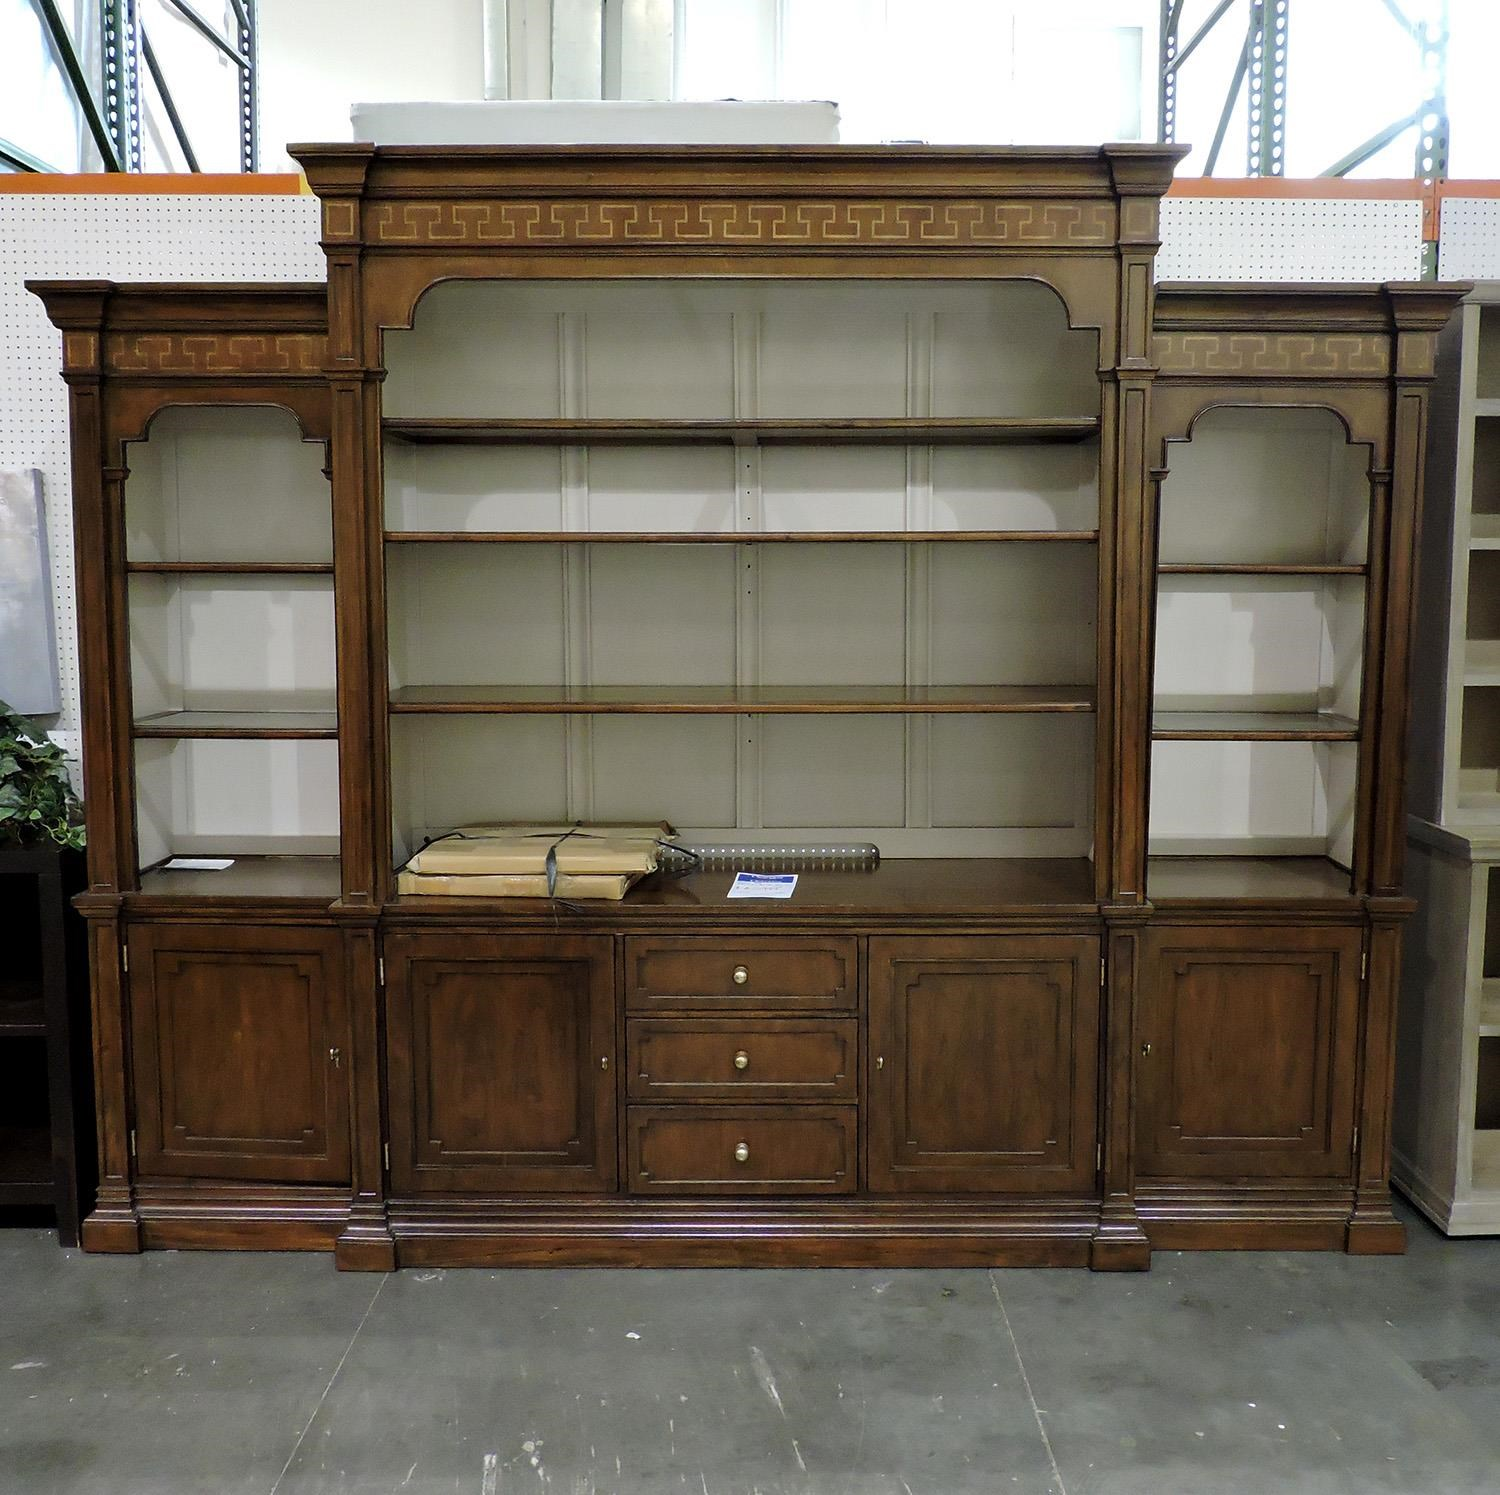 Stanley Furniture Clearance Fairfax Wall Unit - Item Number: 830578086